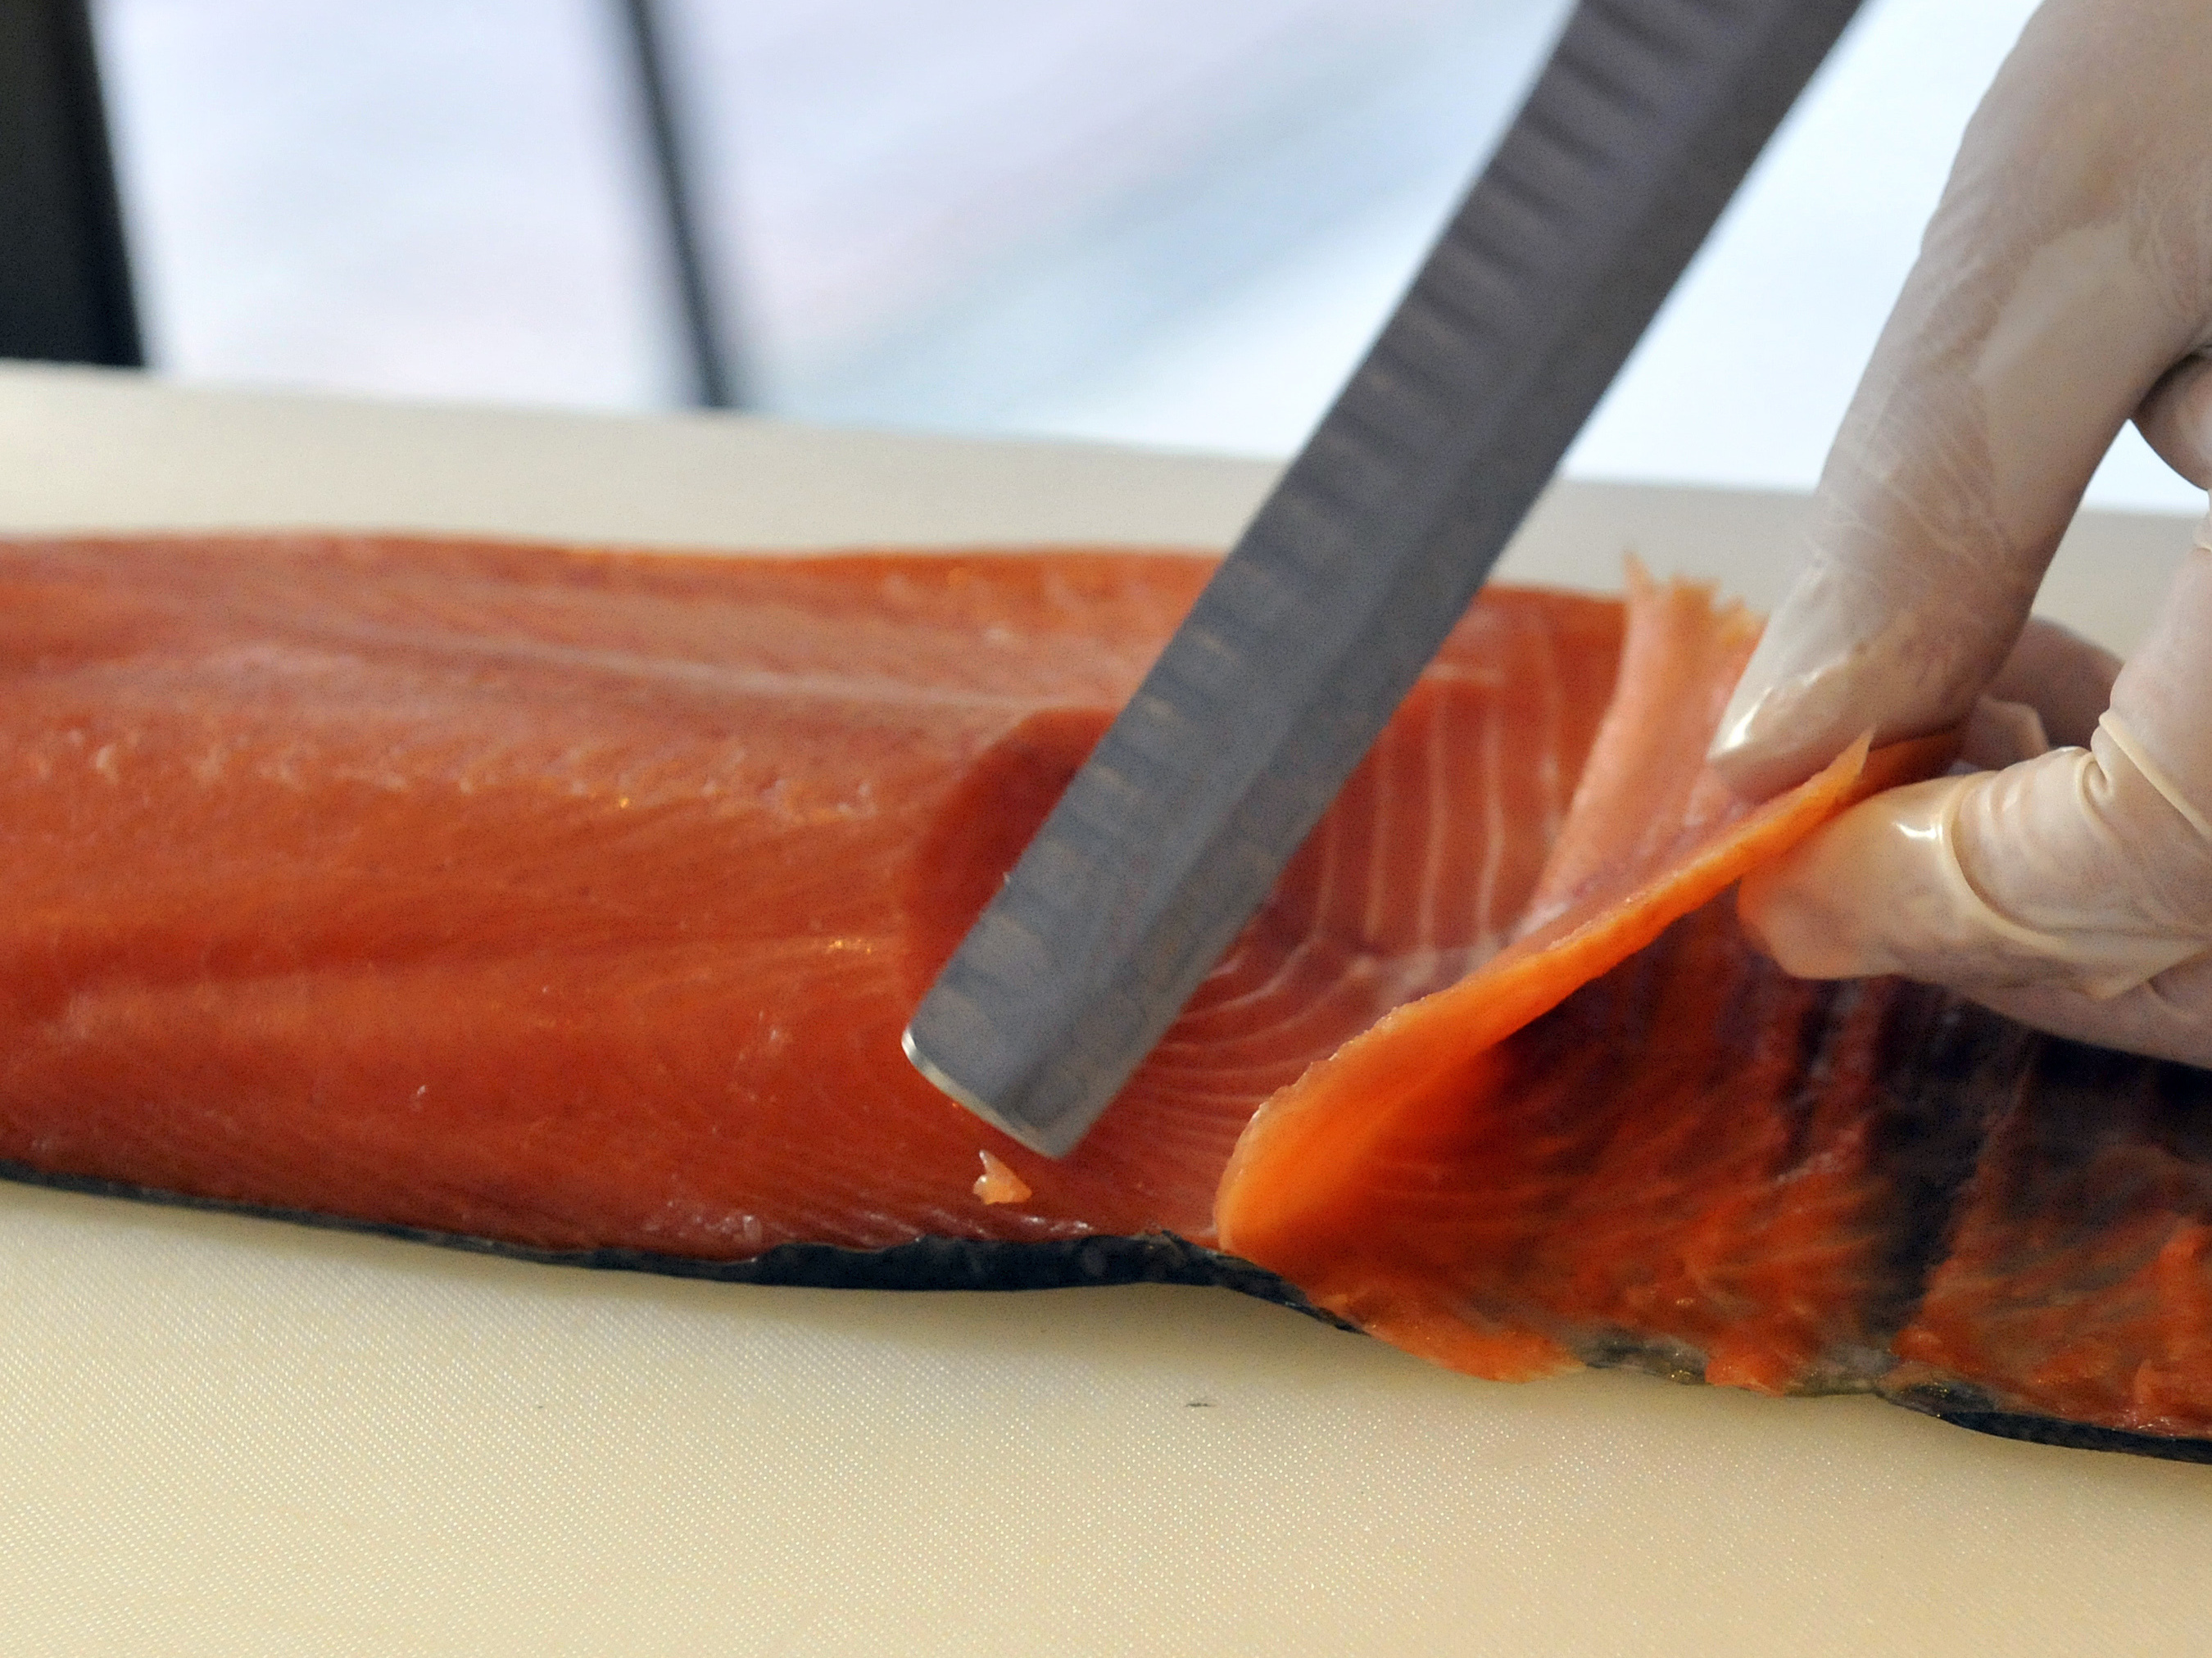 Sushi lover pulled 5-foot tapeworm from intestines